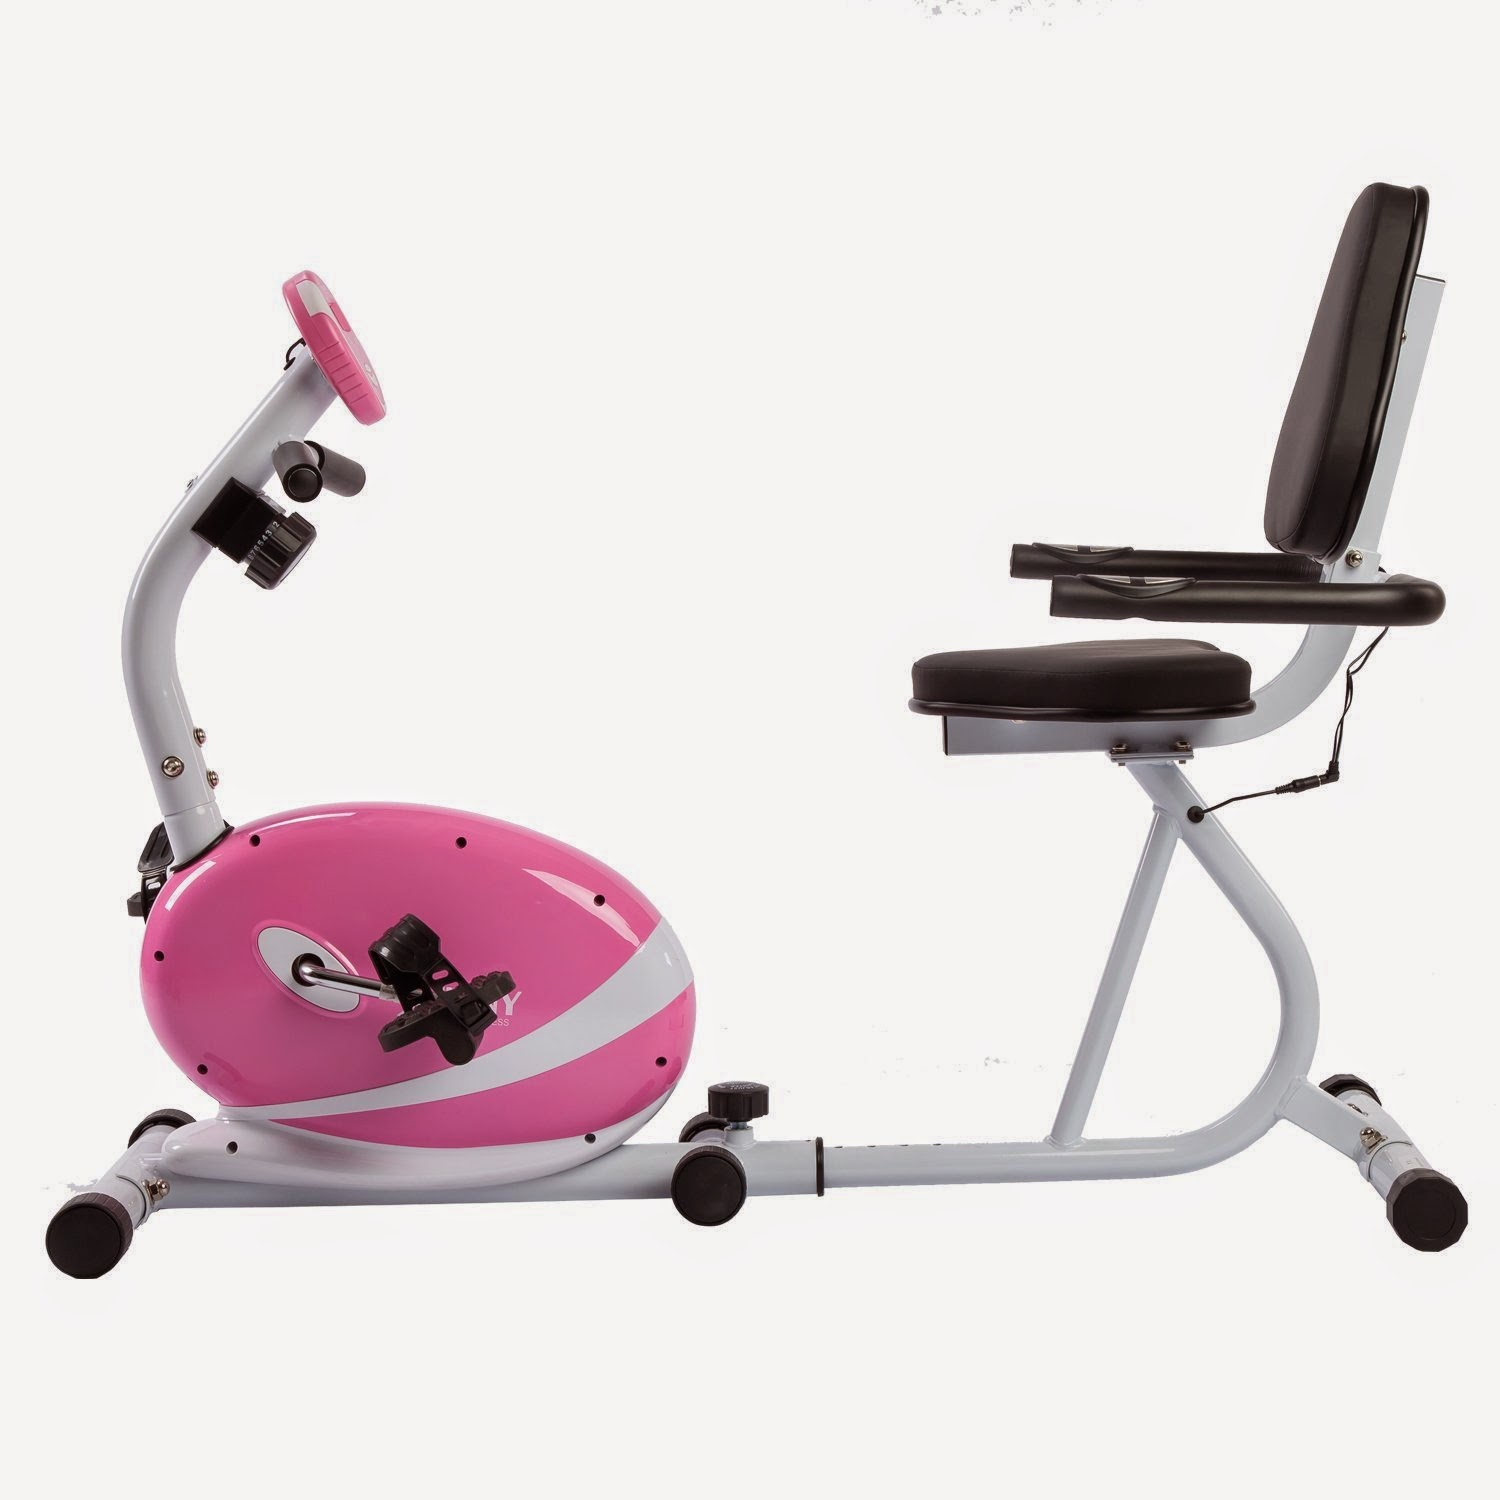 Sunny Health & Fitness Pink Magnetic Recumbent Bike, review features, 8 levels of manual resistance adjustment